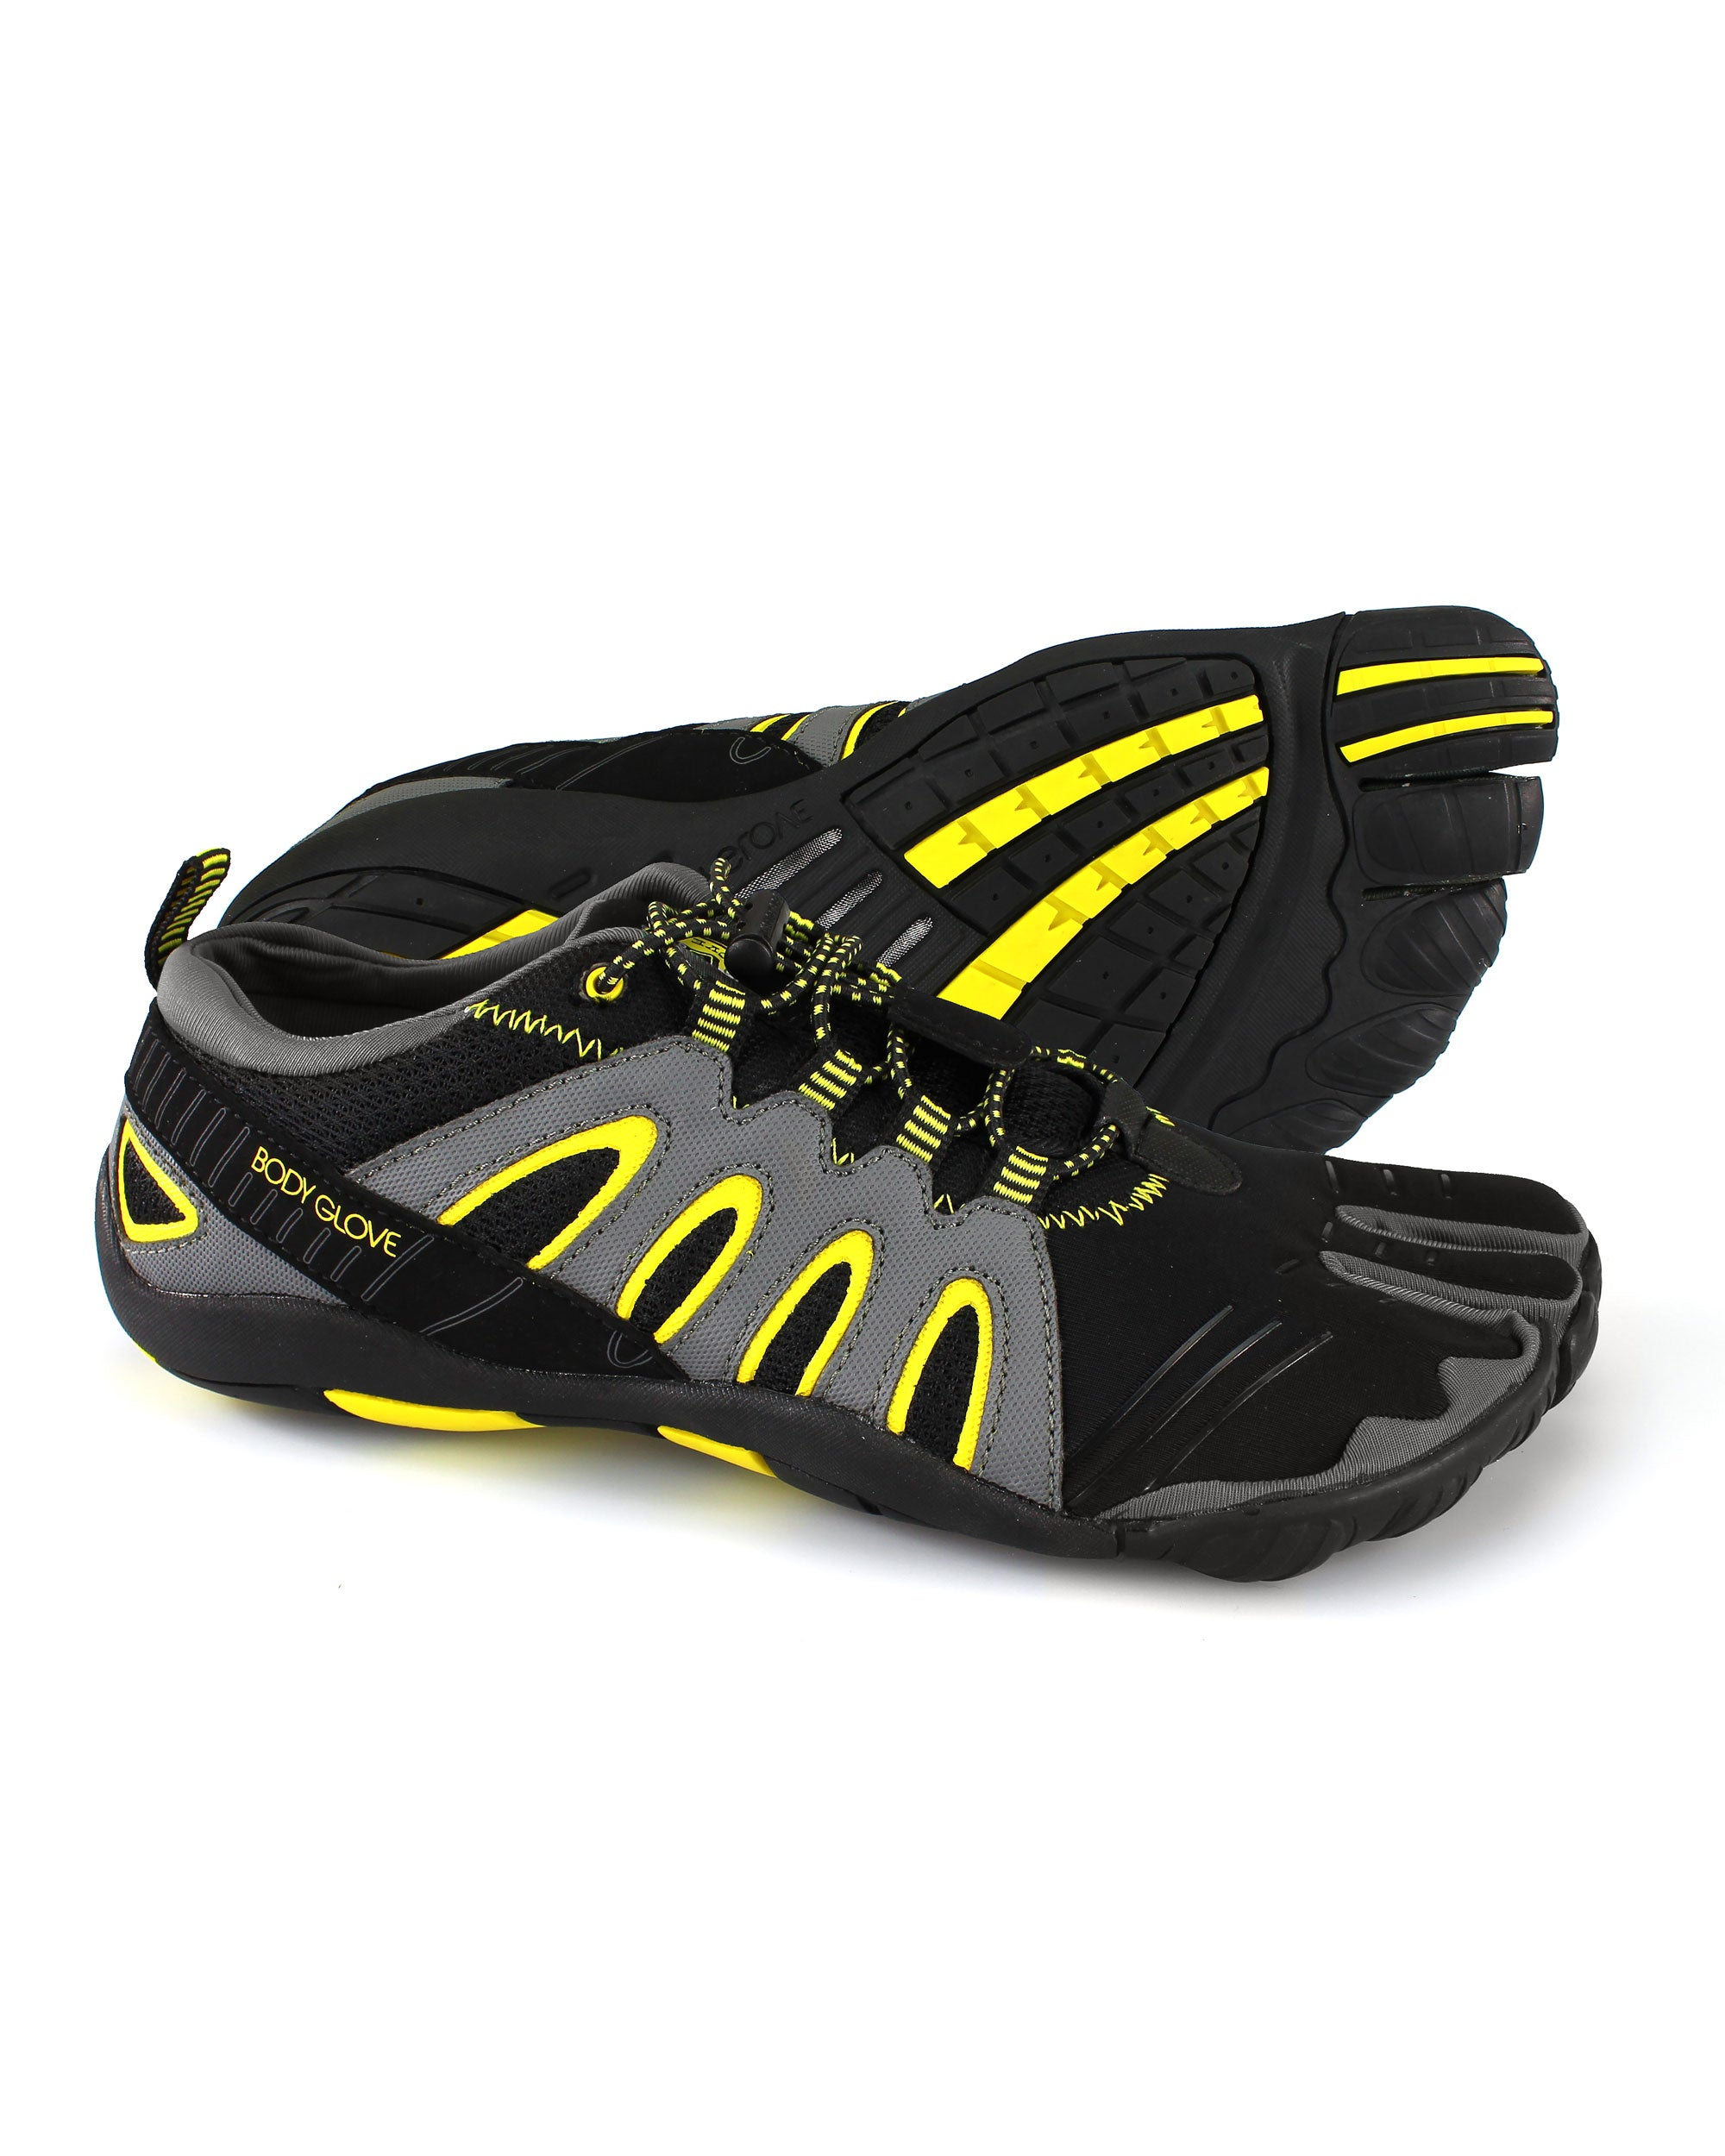 2ef697af94cb Men s 3T Barefoot Warrior Water Shoe in Black Yellow – Body Glove